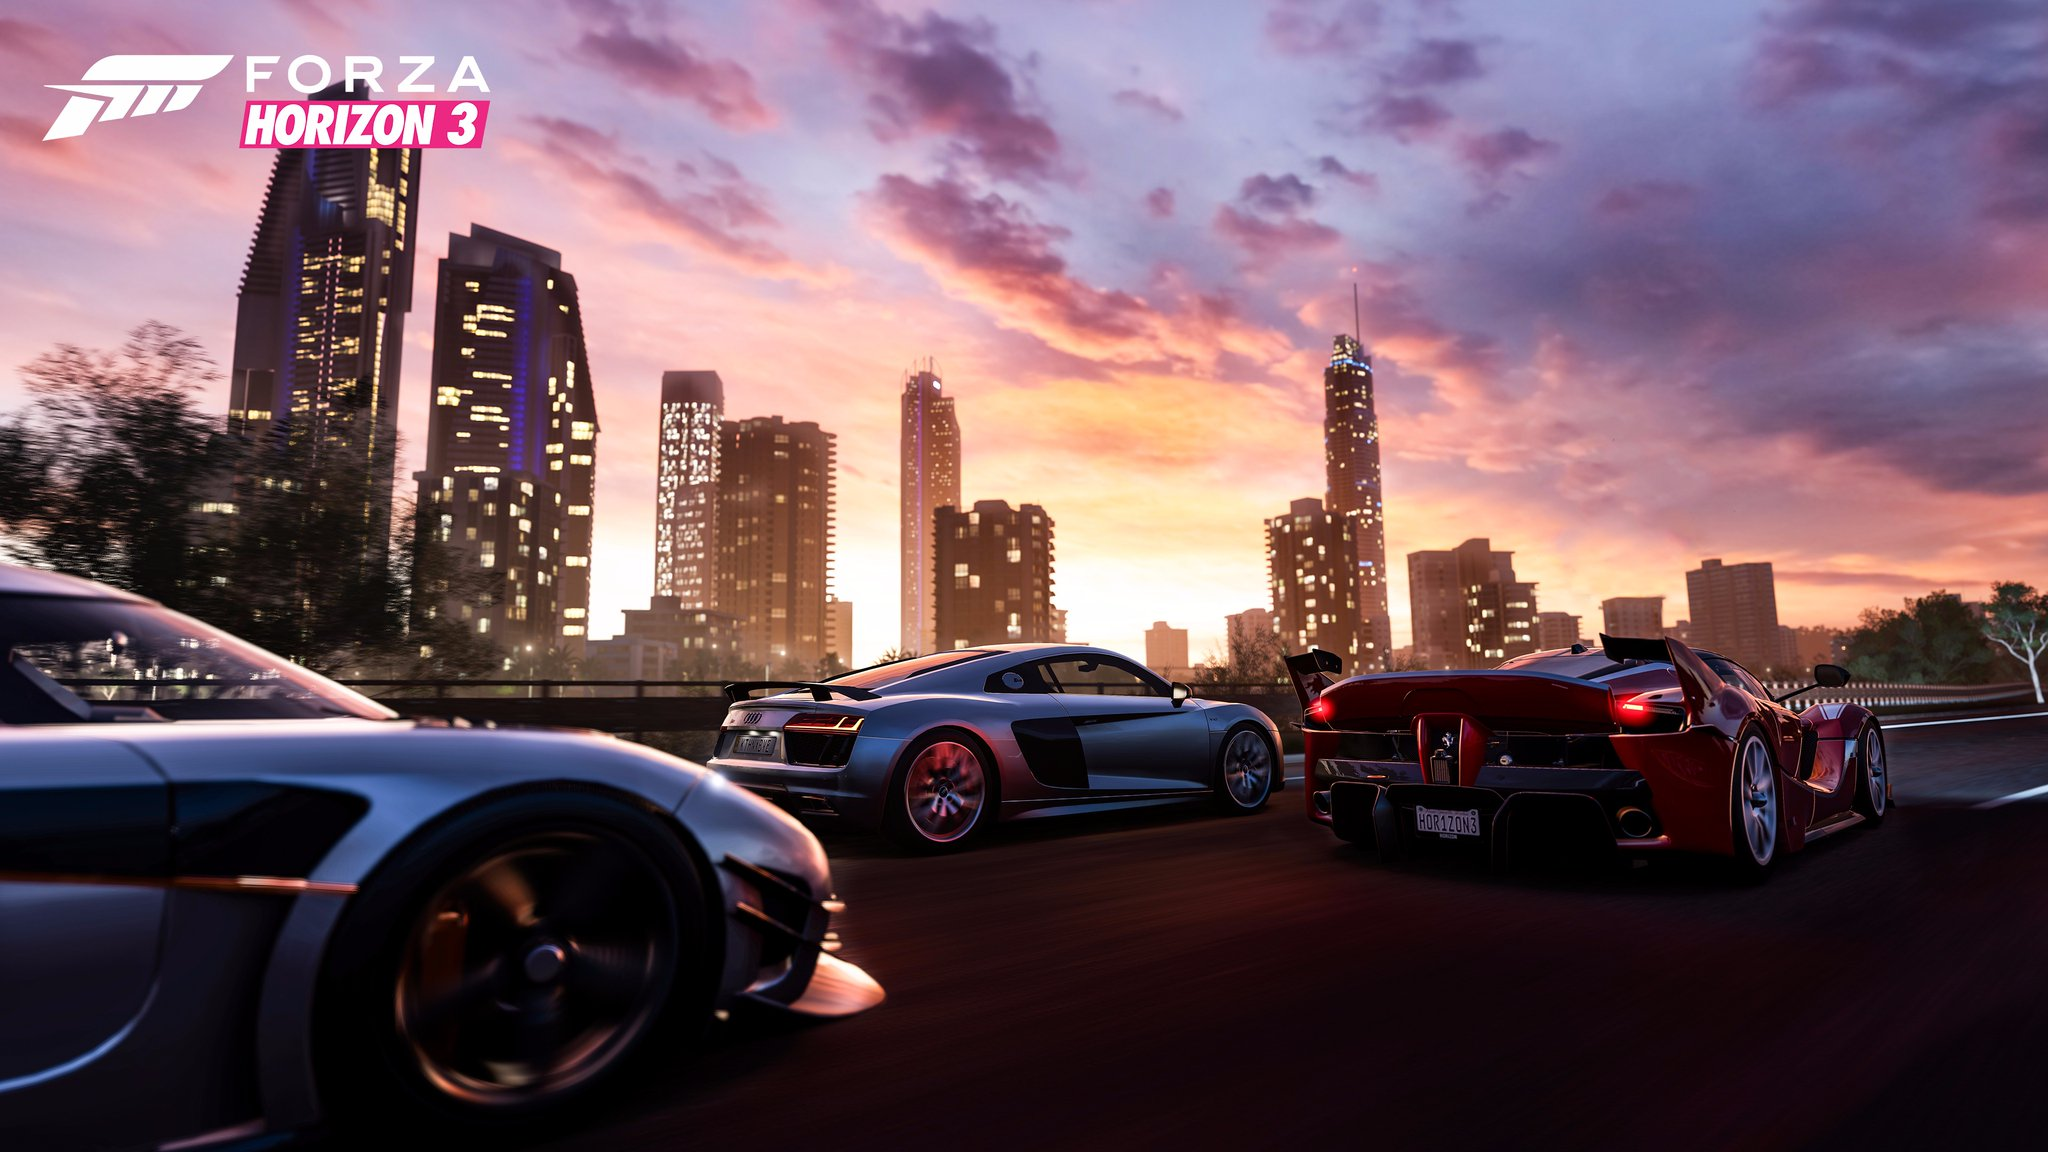 forza horizon 3 arrive du xbox one et windows 10 vid o plan te. Black Bedroom Furniture Sets. Home Design Ideas